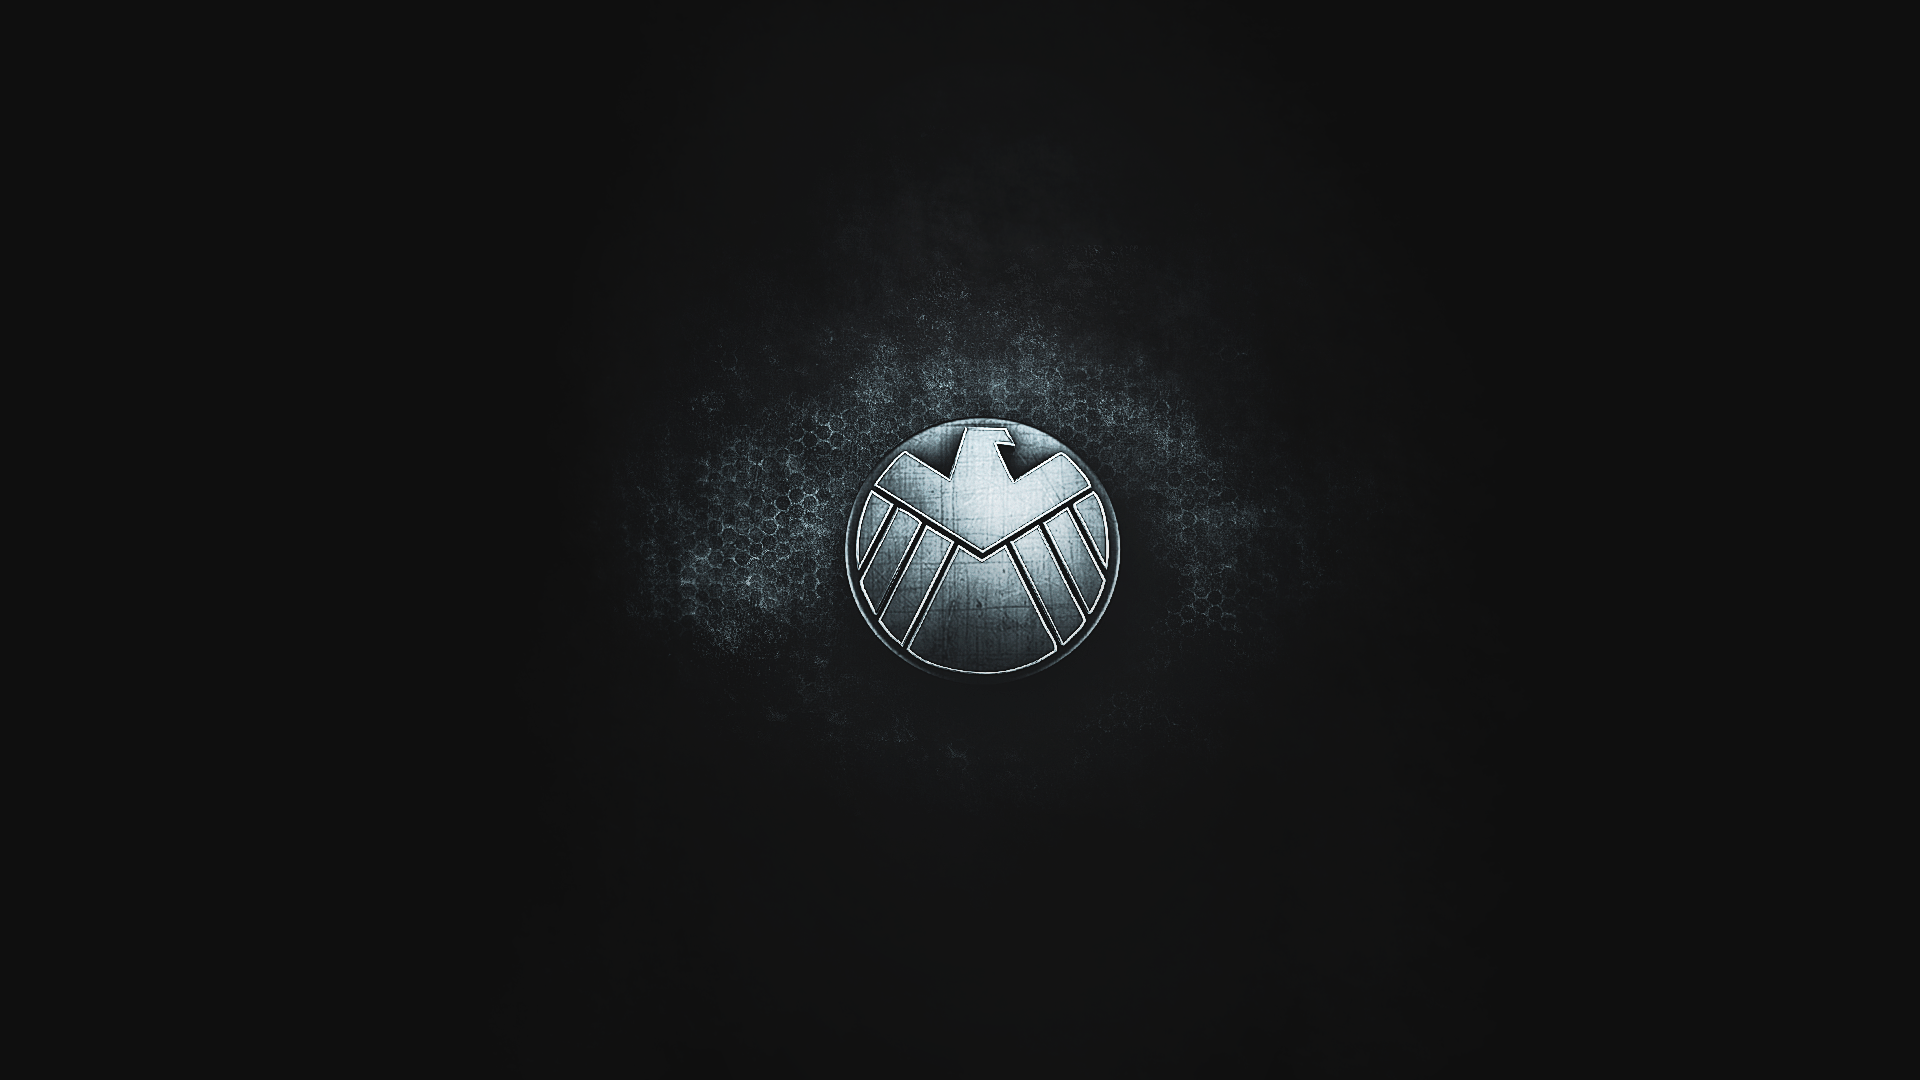 the avengers 2 wallpaper hd for windows 7